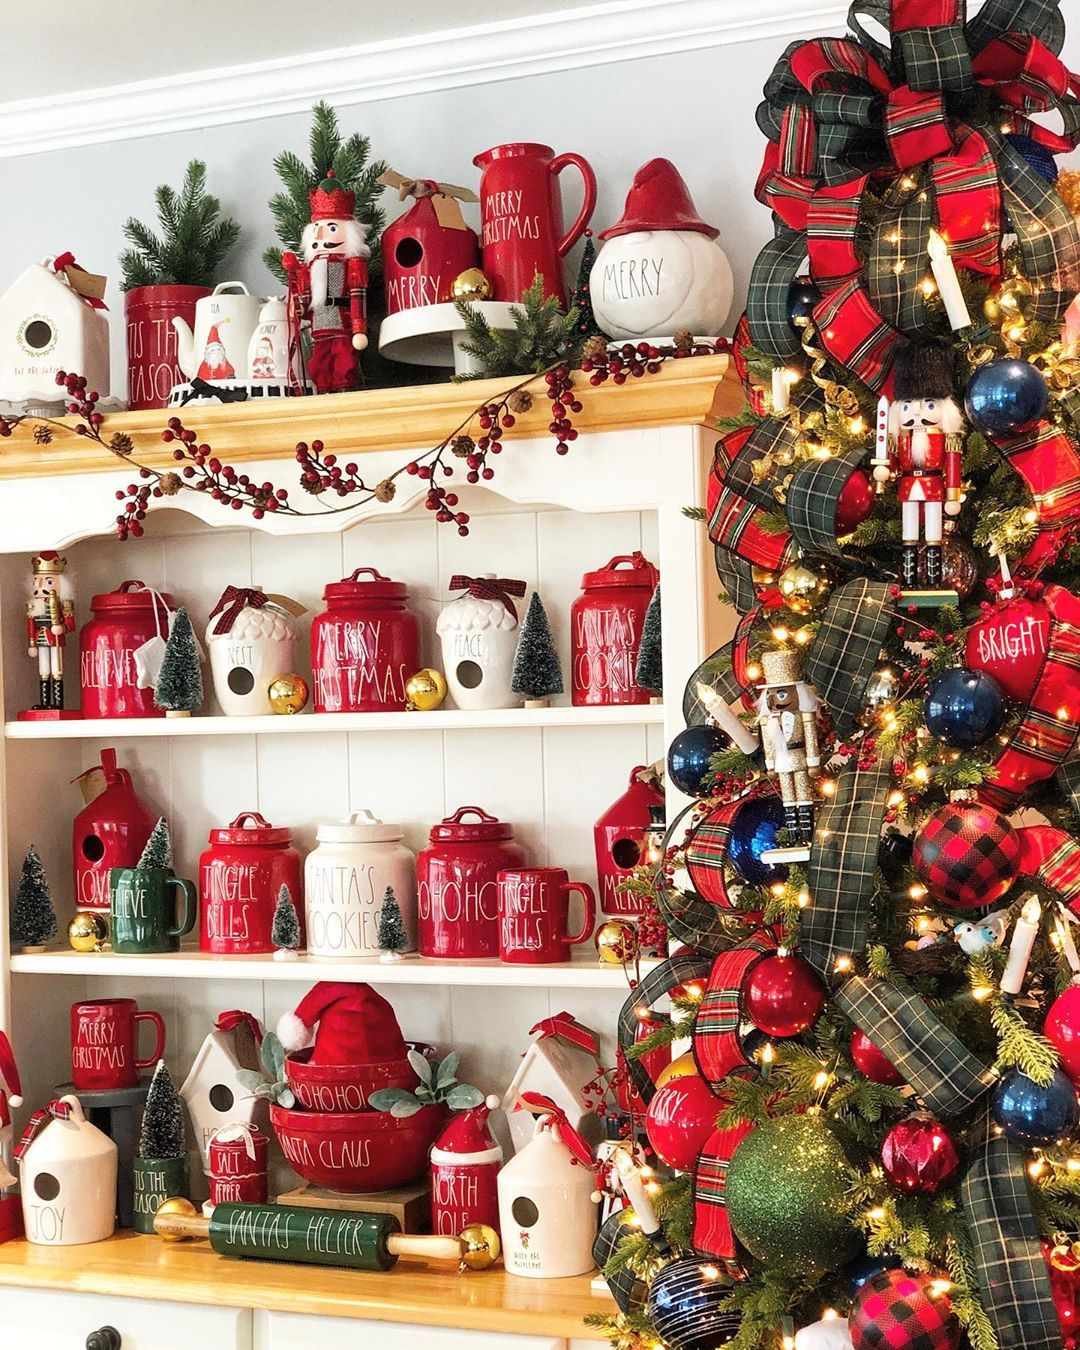 Classic Christmas Decor Achieved After Seeing All The Flocked Christmas Trees B Classic Christmas Decorations Flocked Christmas Trees Christmas Decorations